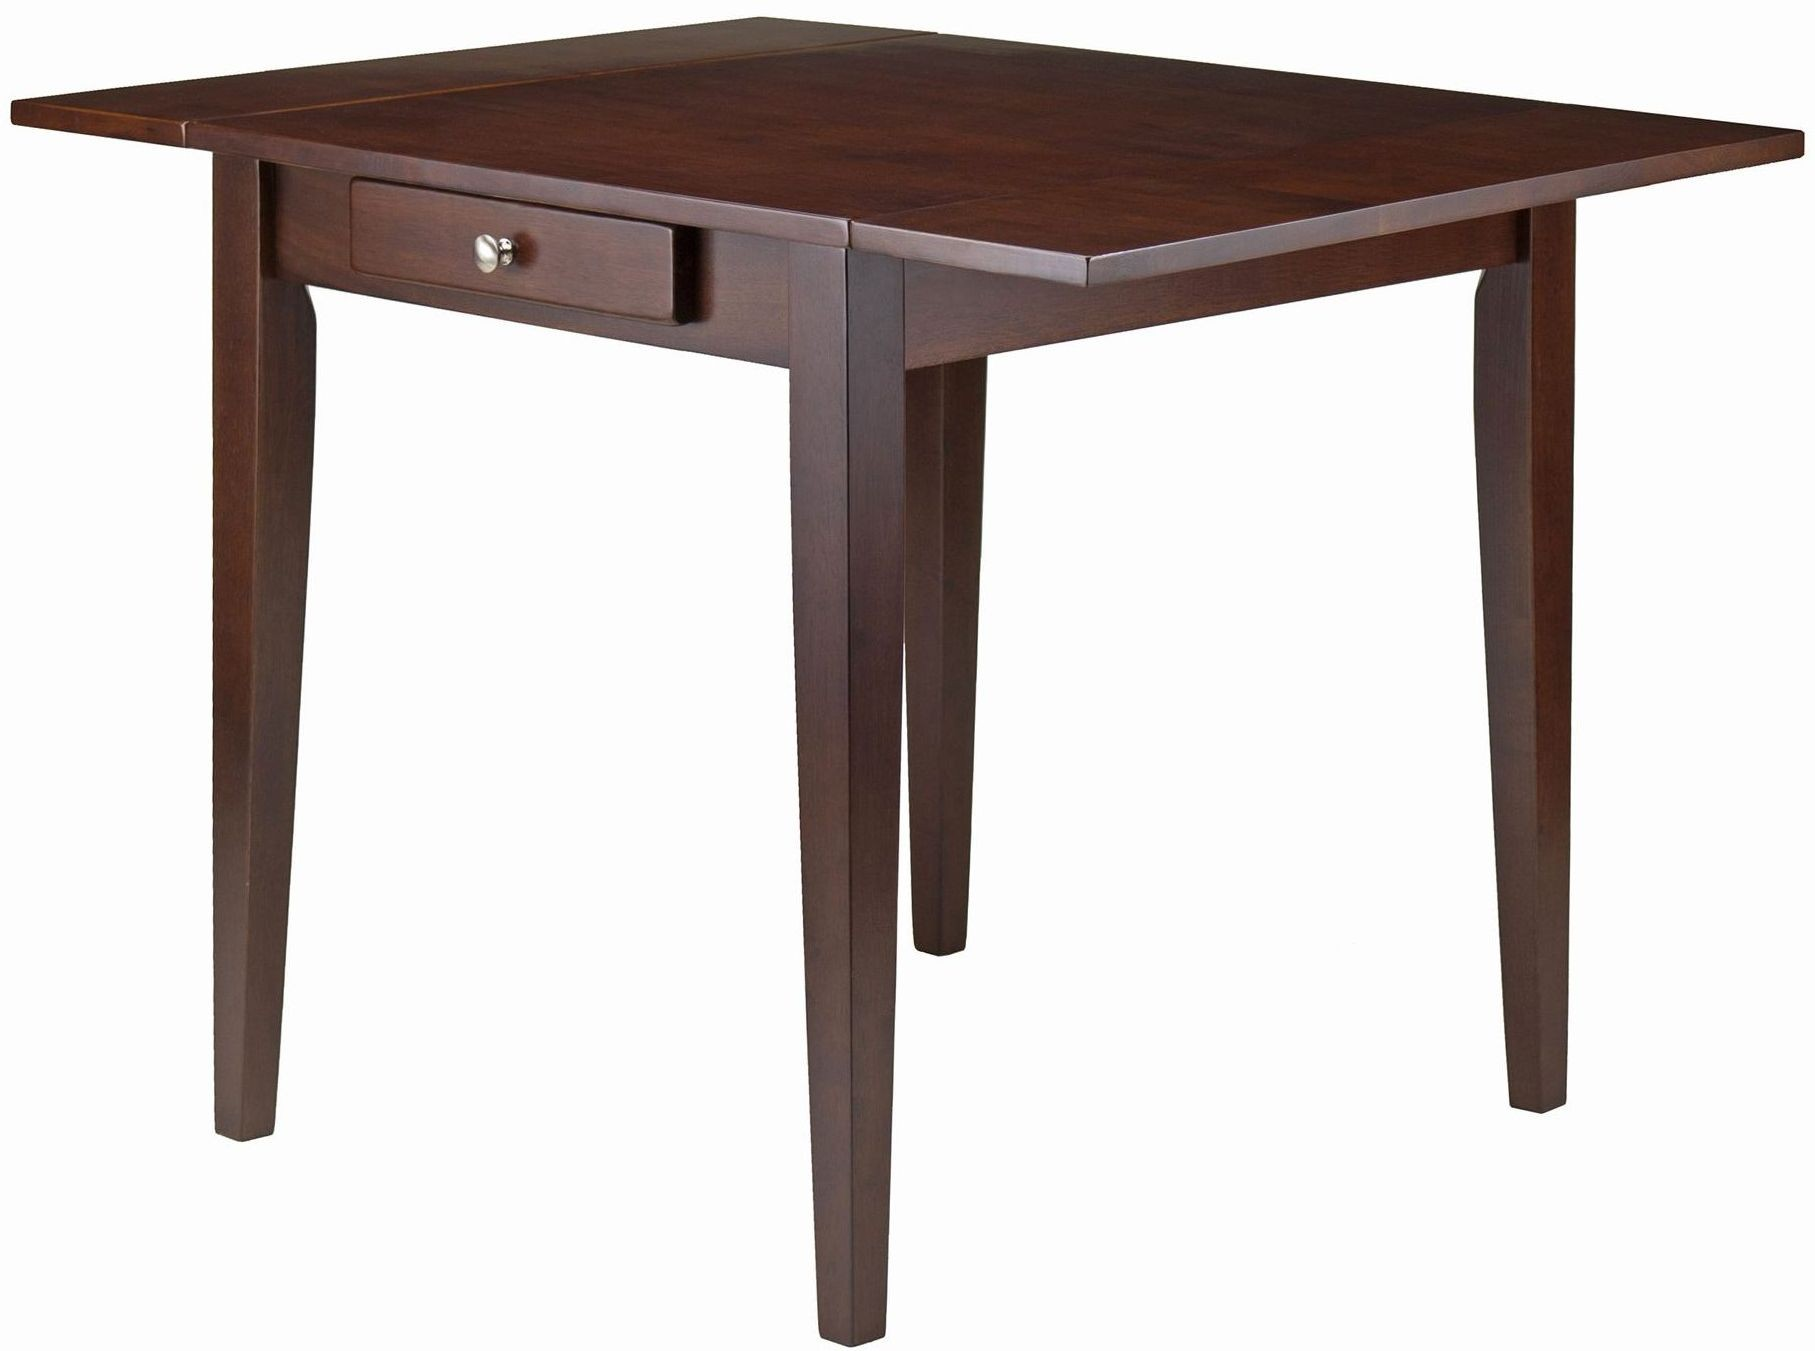 hamilton antique walnut double drop leaf dining table 94141 winsome. Black Bedroom Furniture Sets. Home Design Ideas